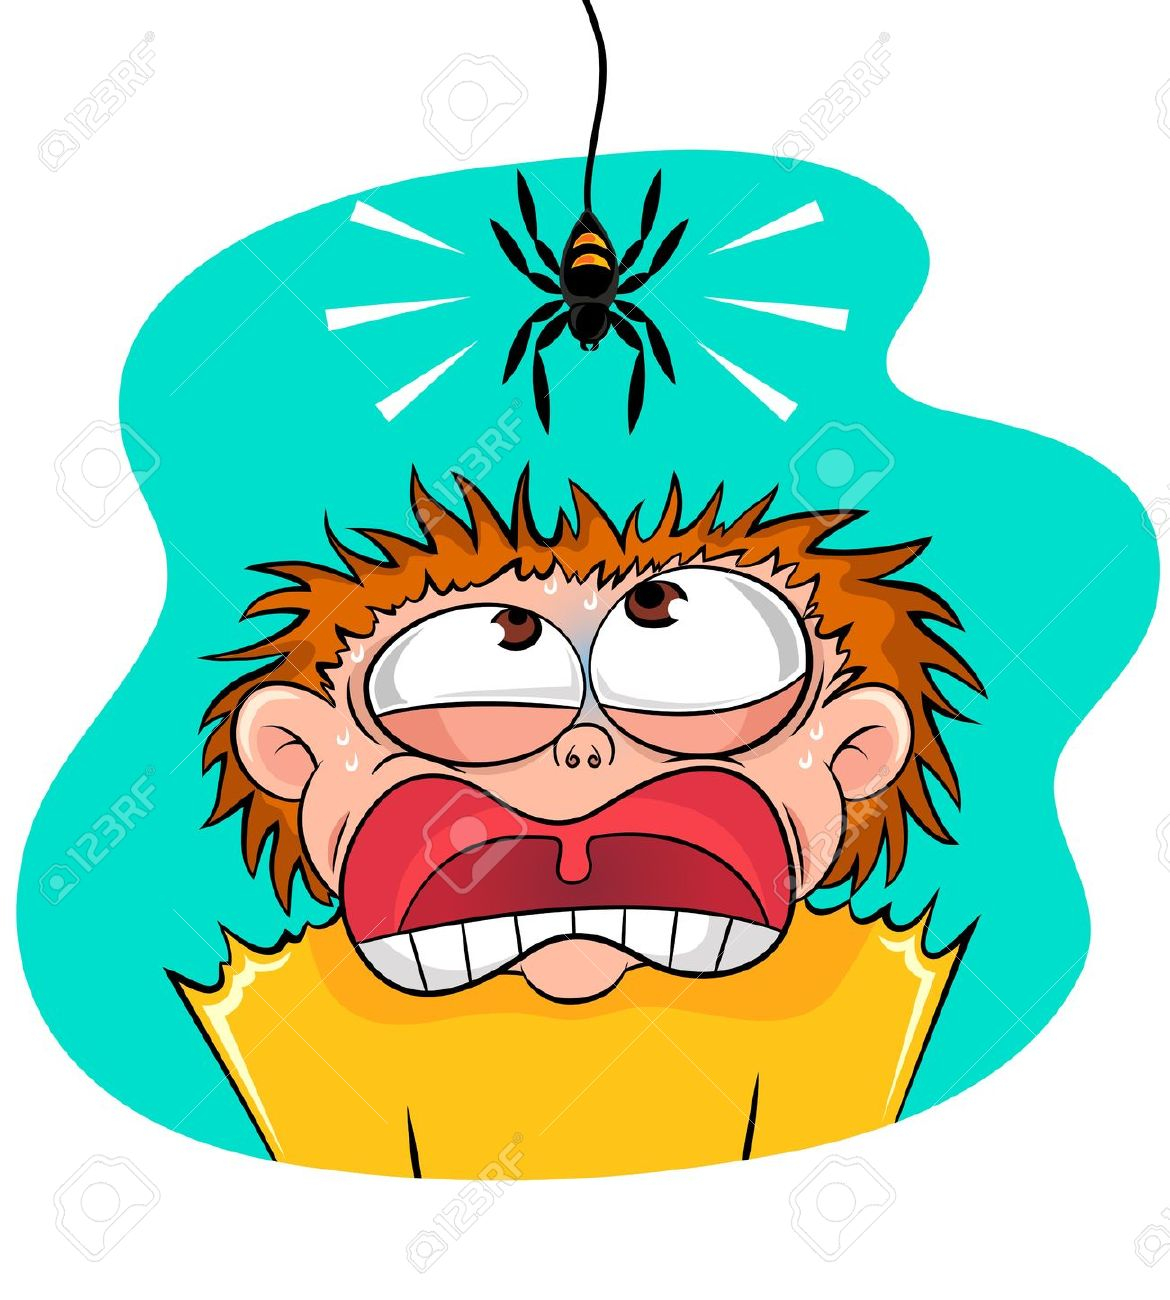 Boy Scared Of Spider Royalty Free Cliparts, Vectors, And Stock.